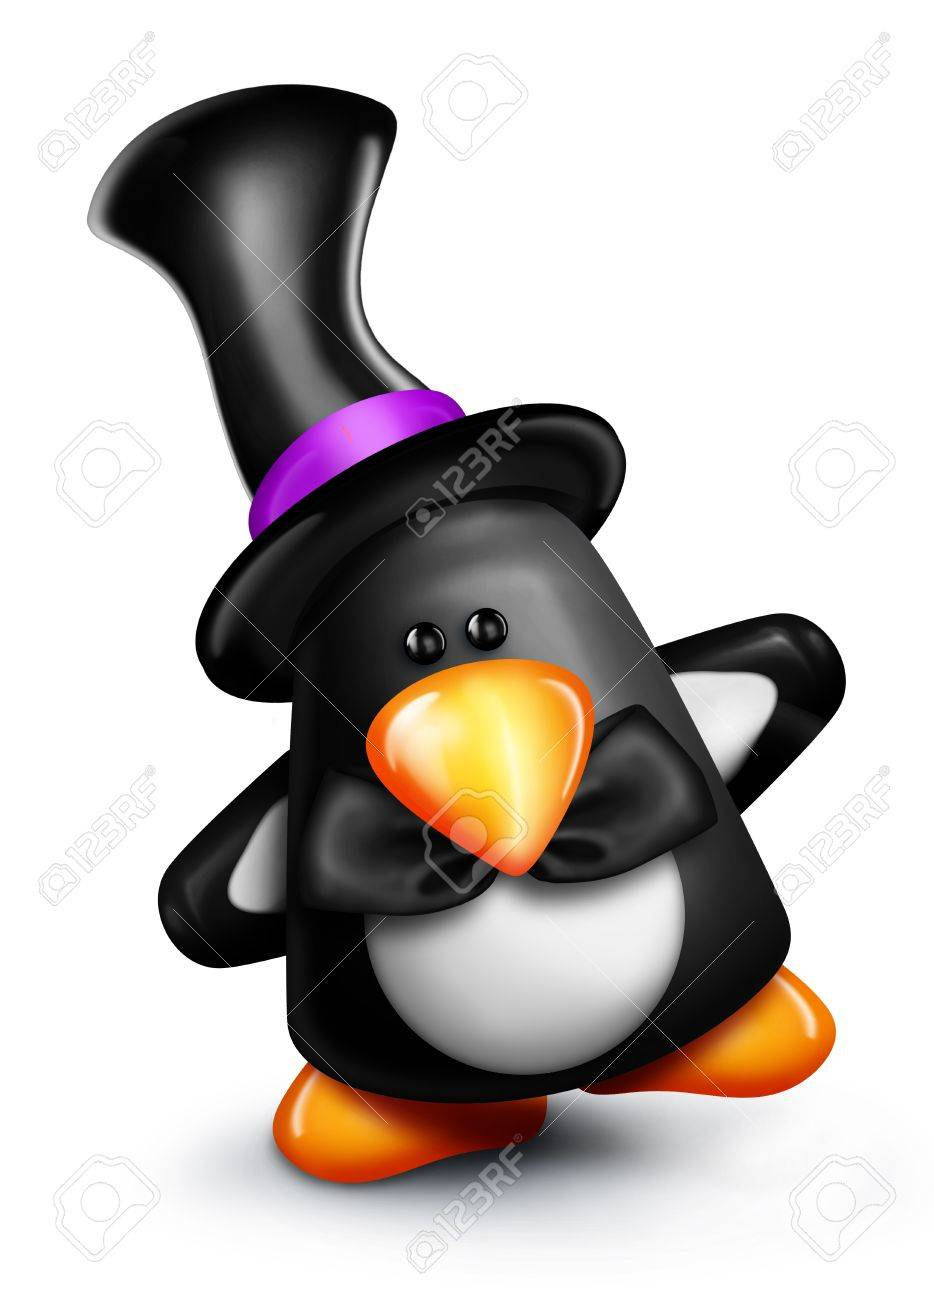 Whimsical Cartoon Penguin in Top Hat Stock Photo - 15242146